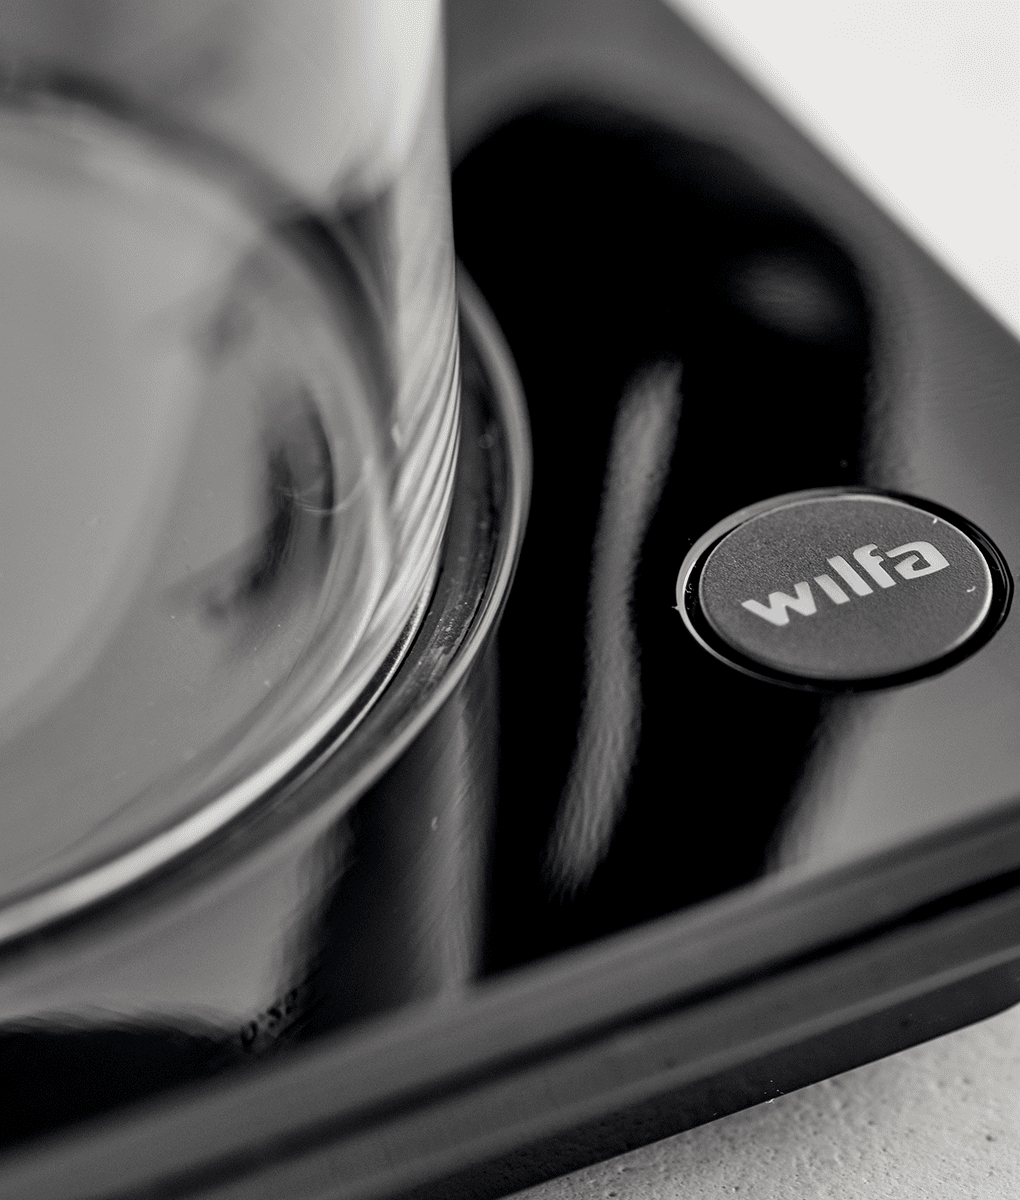 Wilfa Classic, Filter Brewer